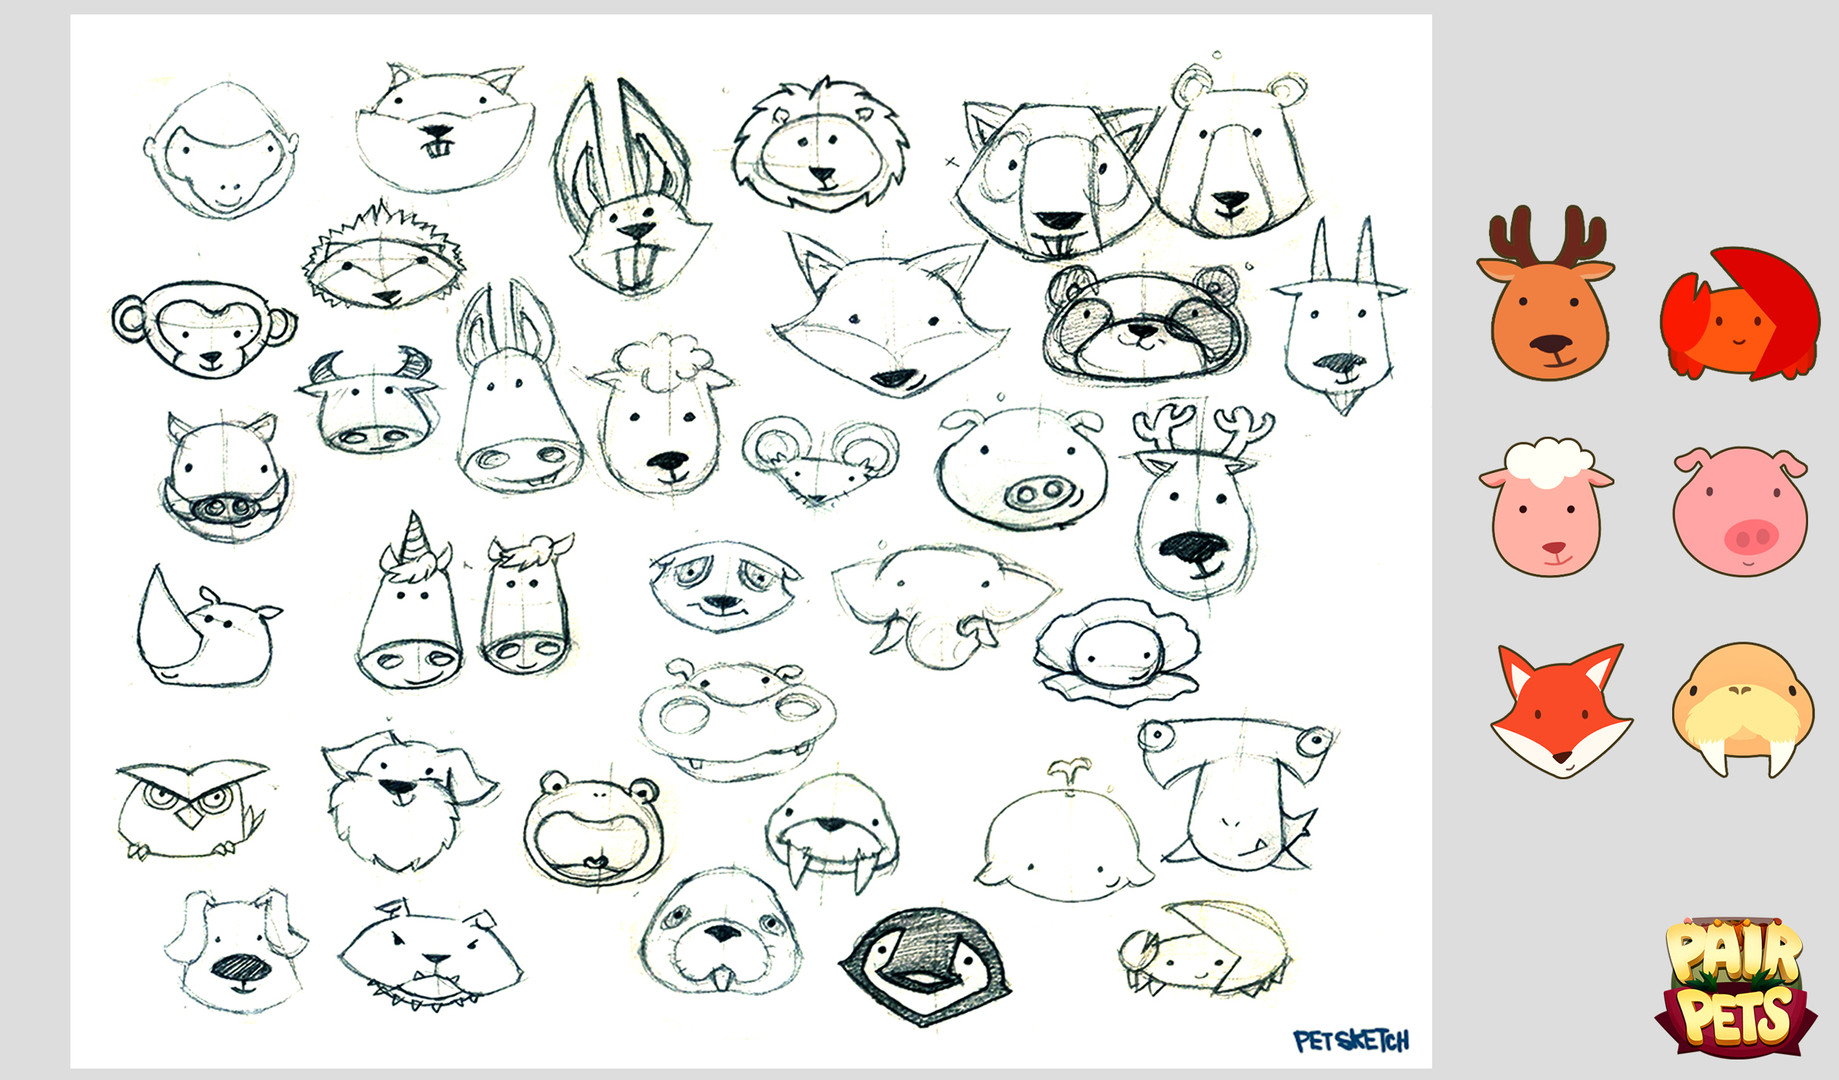 PairPets_Sketch